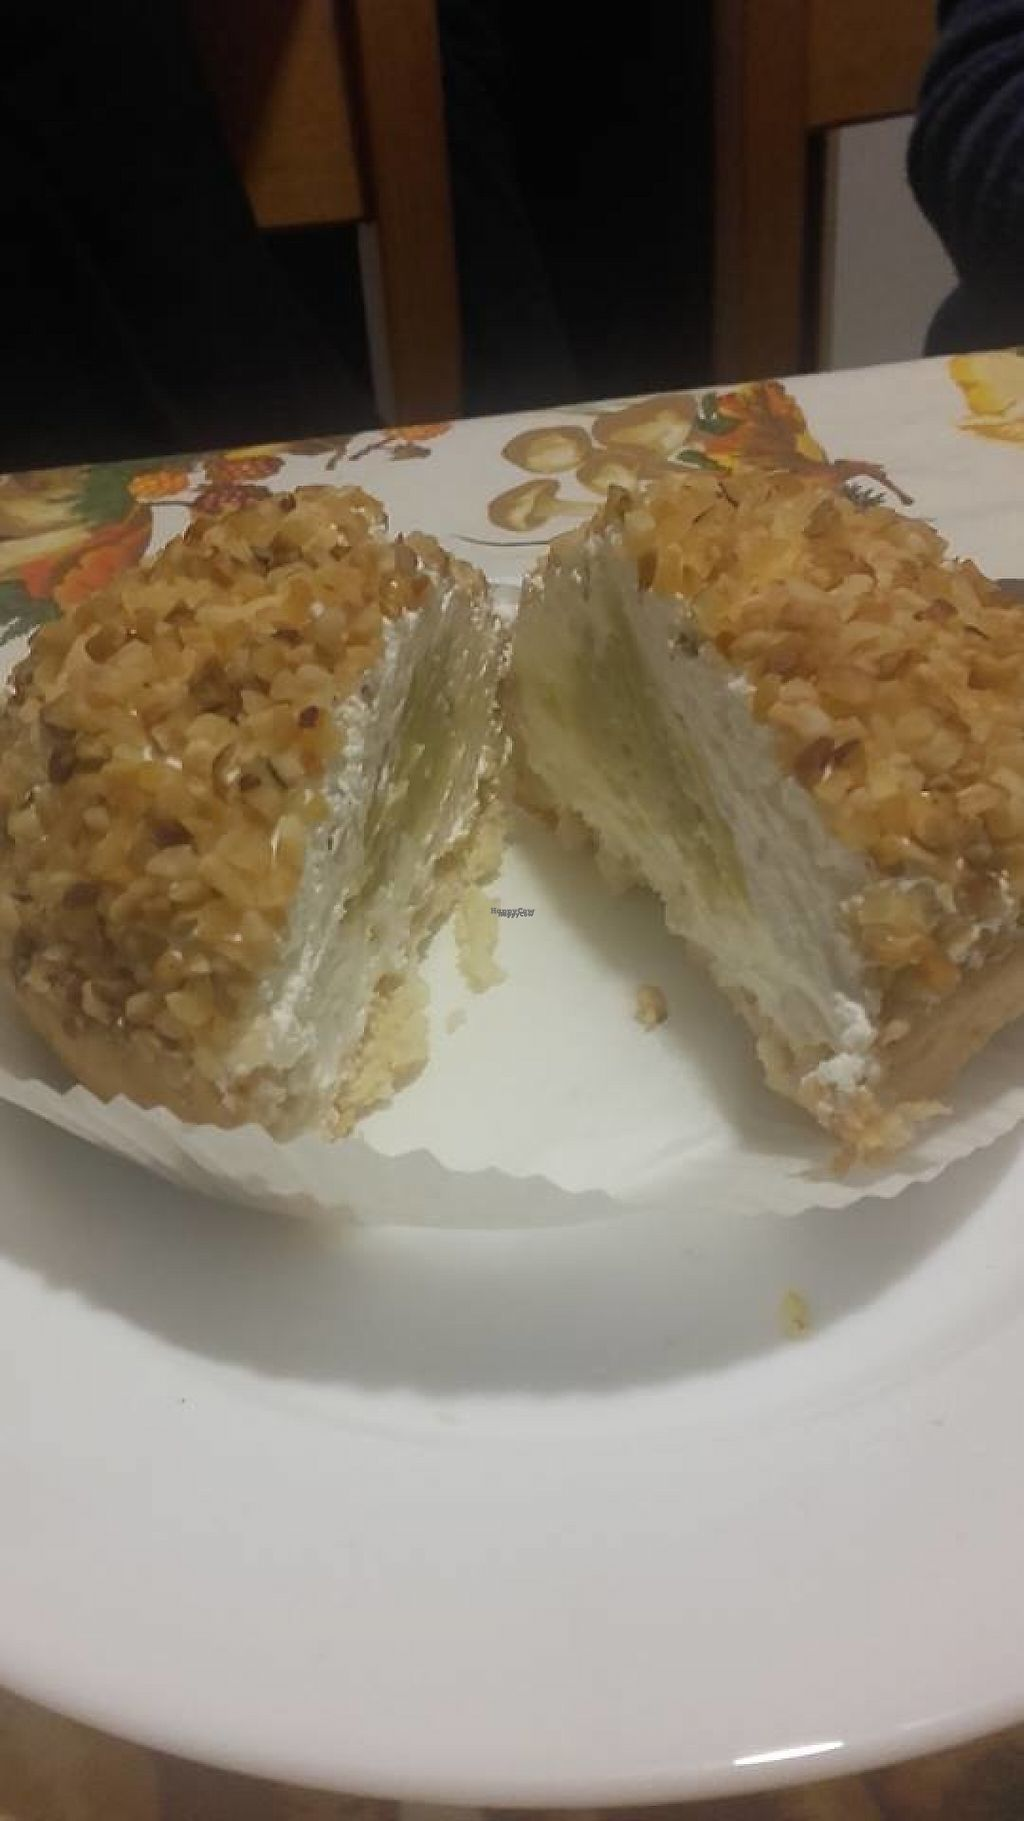 """Photo of Universo Vegano  by <a href=""""/members/profile/SimoneT"""">SimoneT</a> <br/>Cuor di Crema - Heart of cream. This dessert is incredible, covered in cream and hazelnut crumbs, full of crema pasticcera (kind of like custard) <br/> February 15, 2017  - <a href='/contact/abuse/image/47226/226921'>Report</a>"""